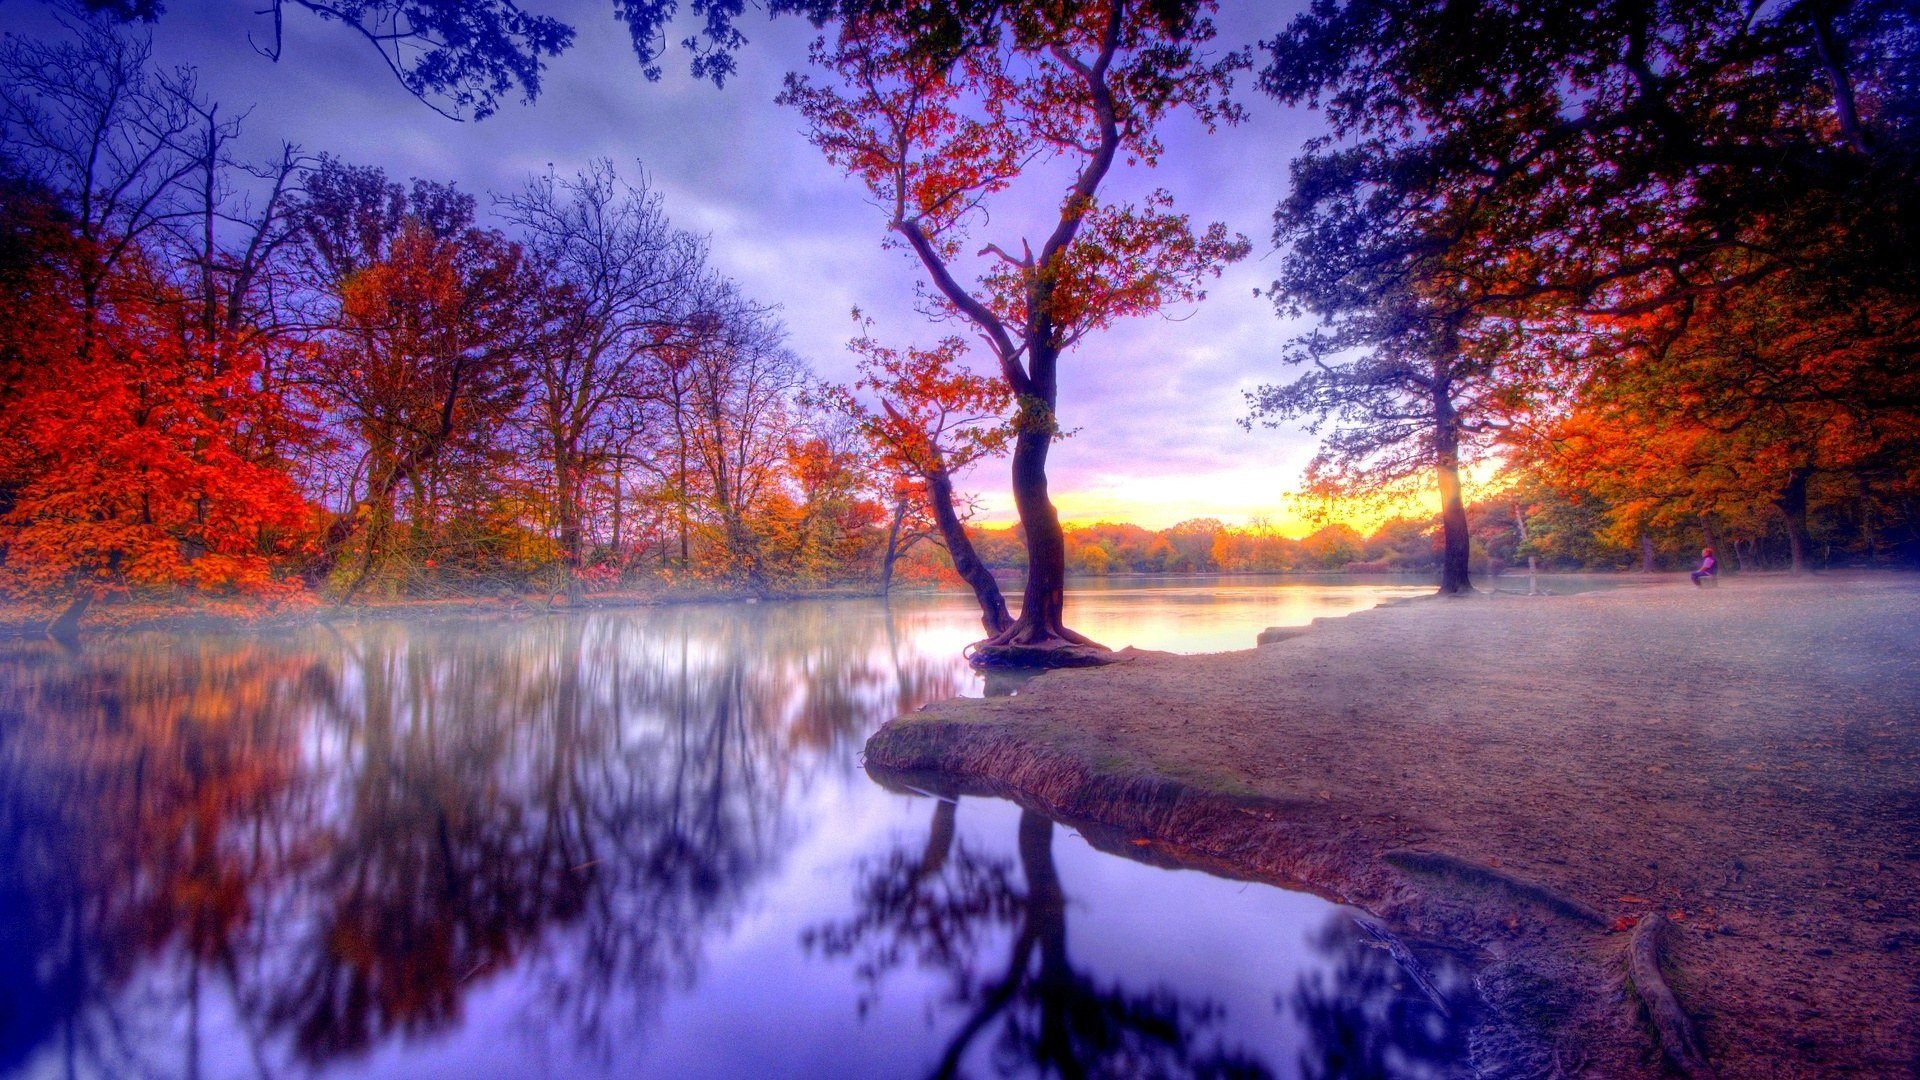 landscape autumn hd wallpaper - photo #19